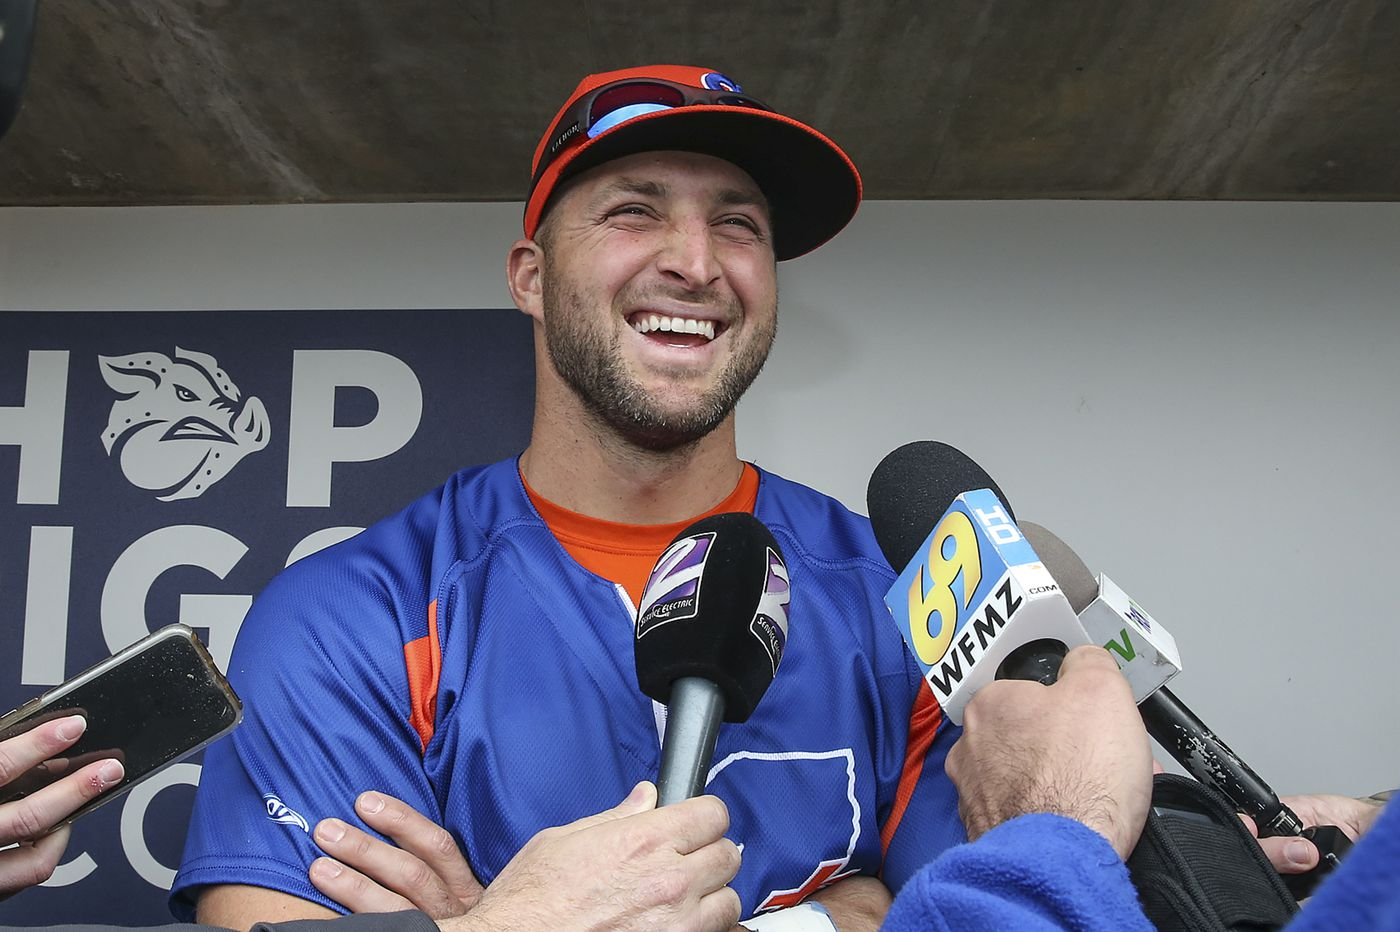 Tim Tebow, three years after jumping to baseball, still learning the ropes as he climbs through minors